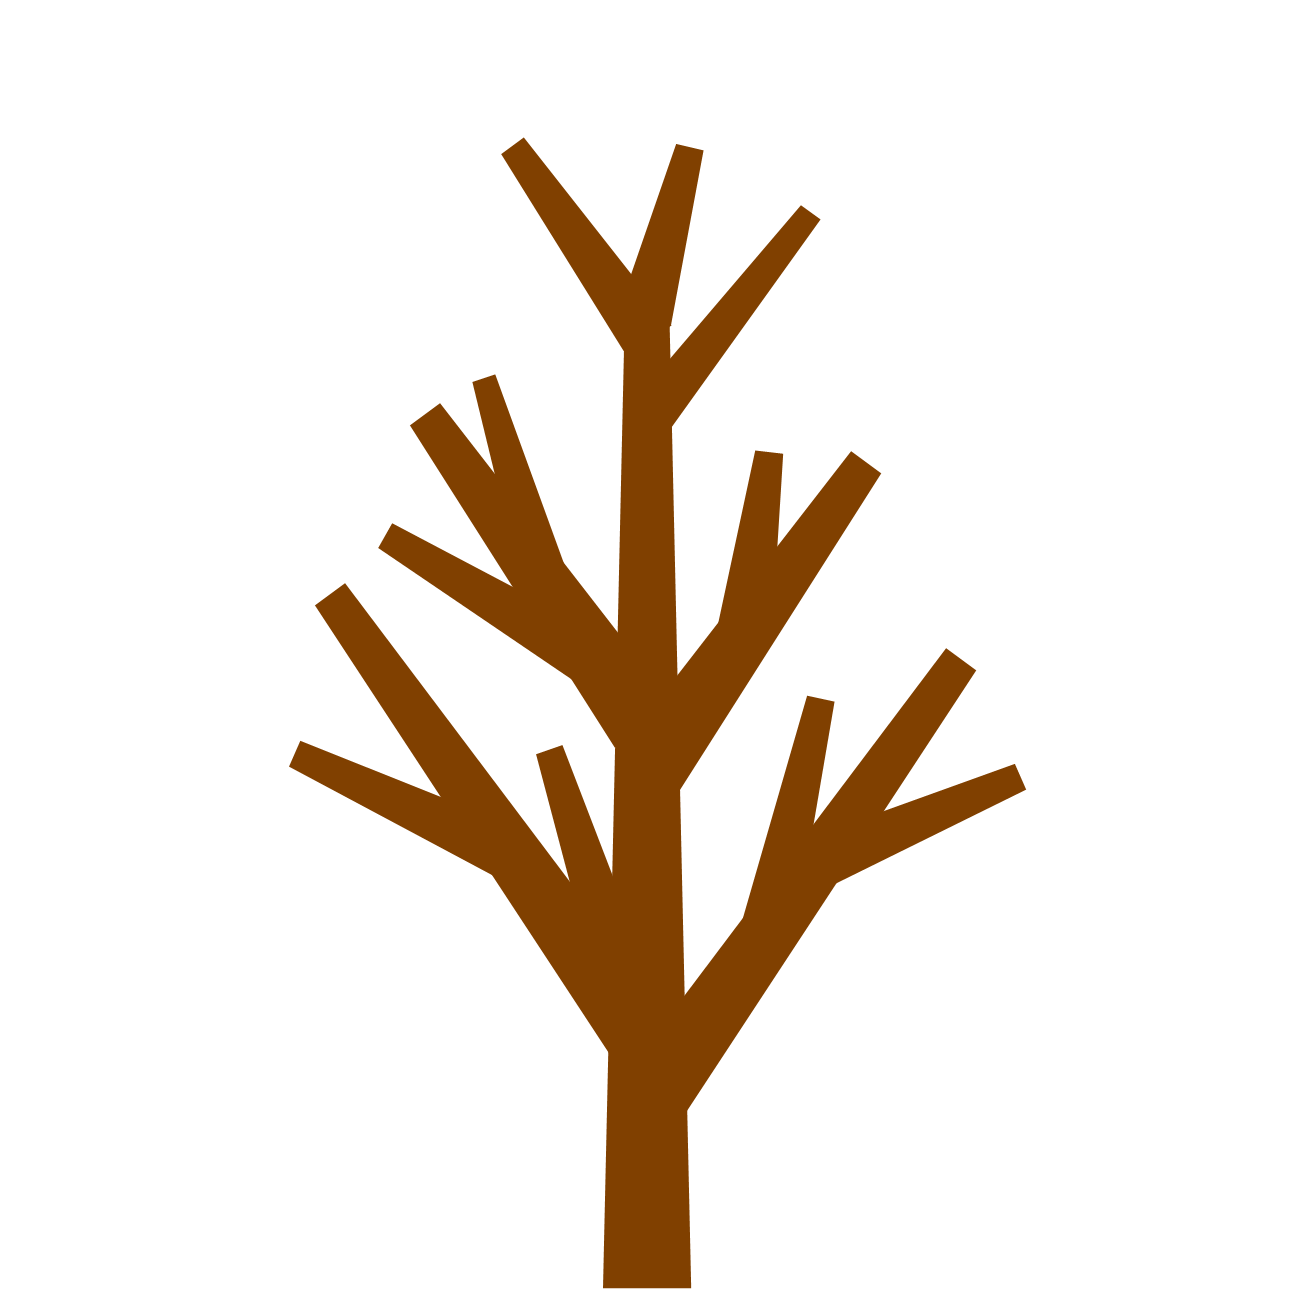 Clipart tree with no leaves clipart images gallery for free.